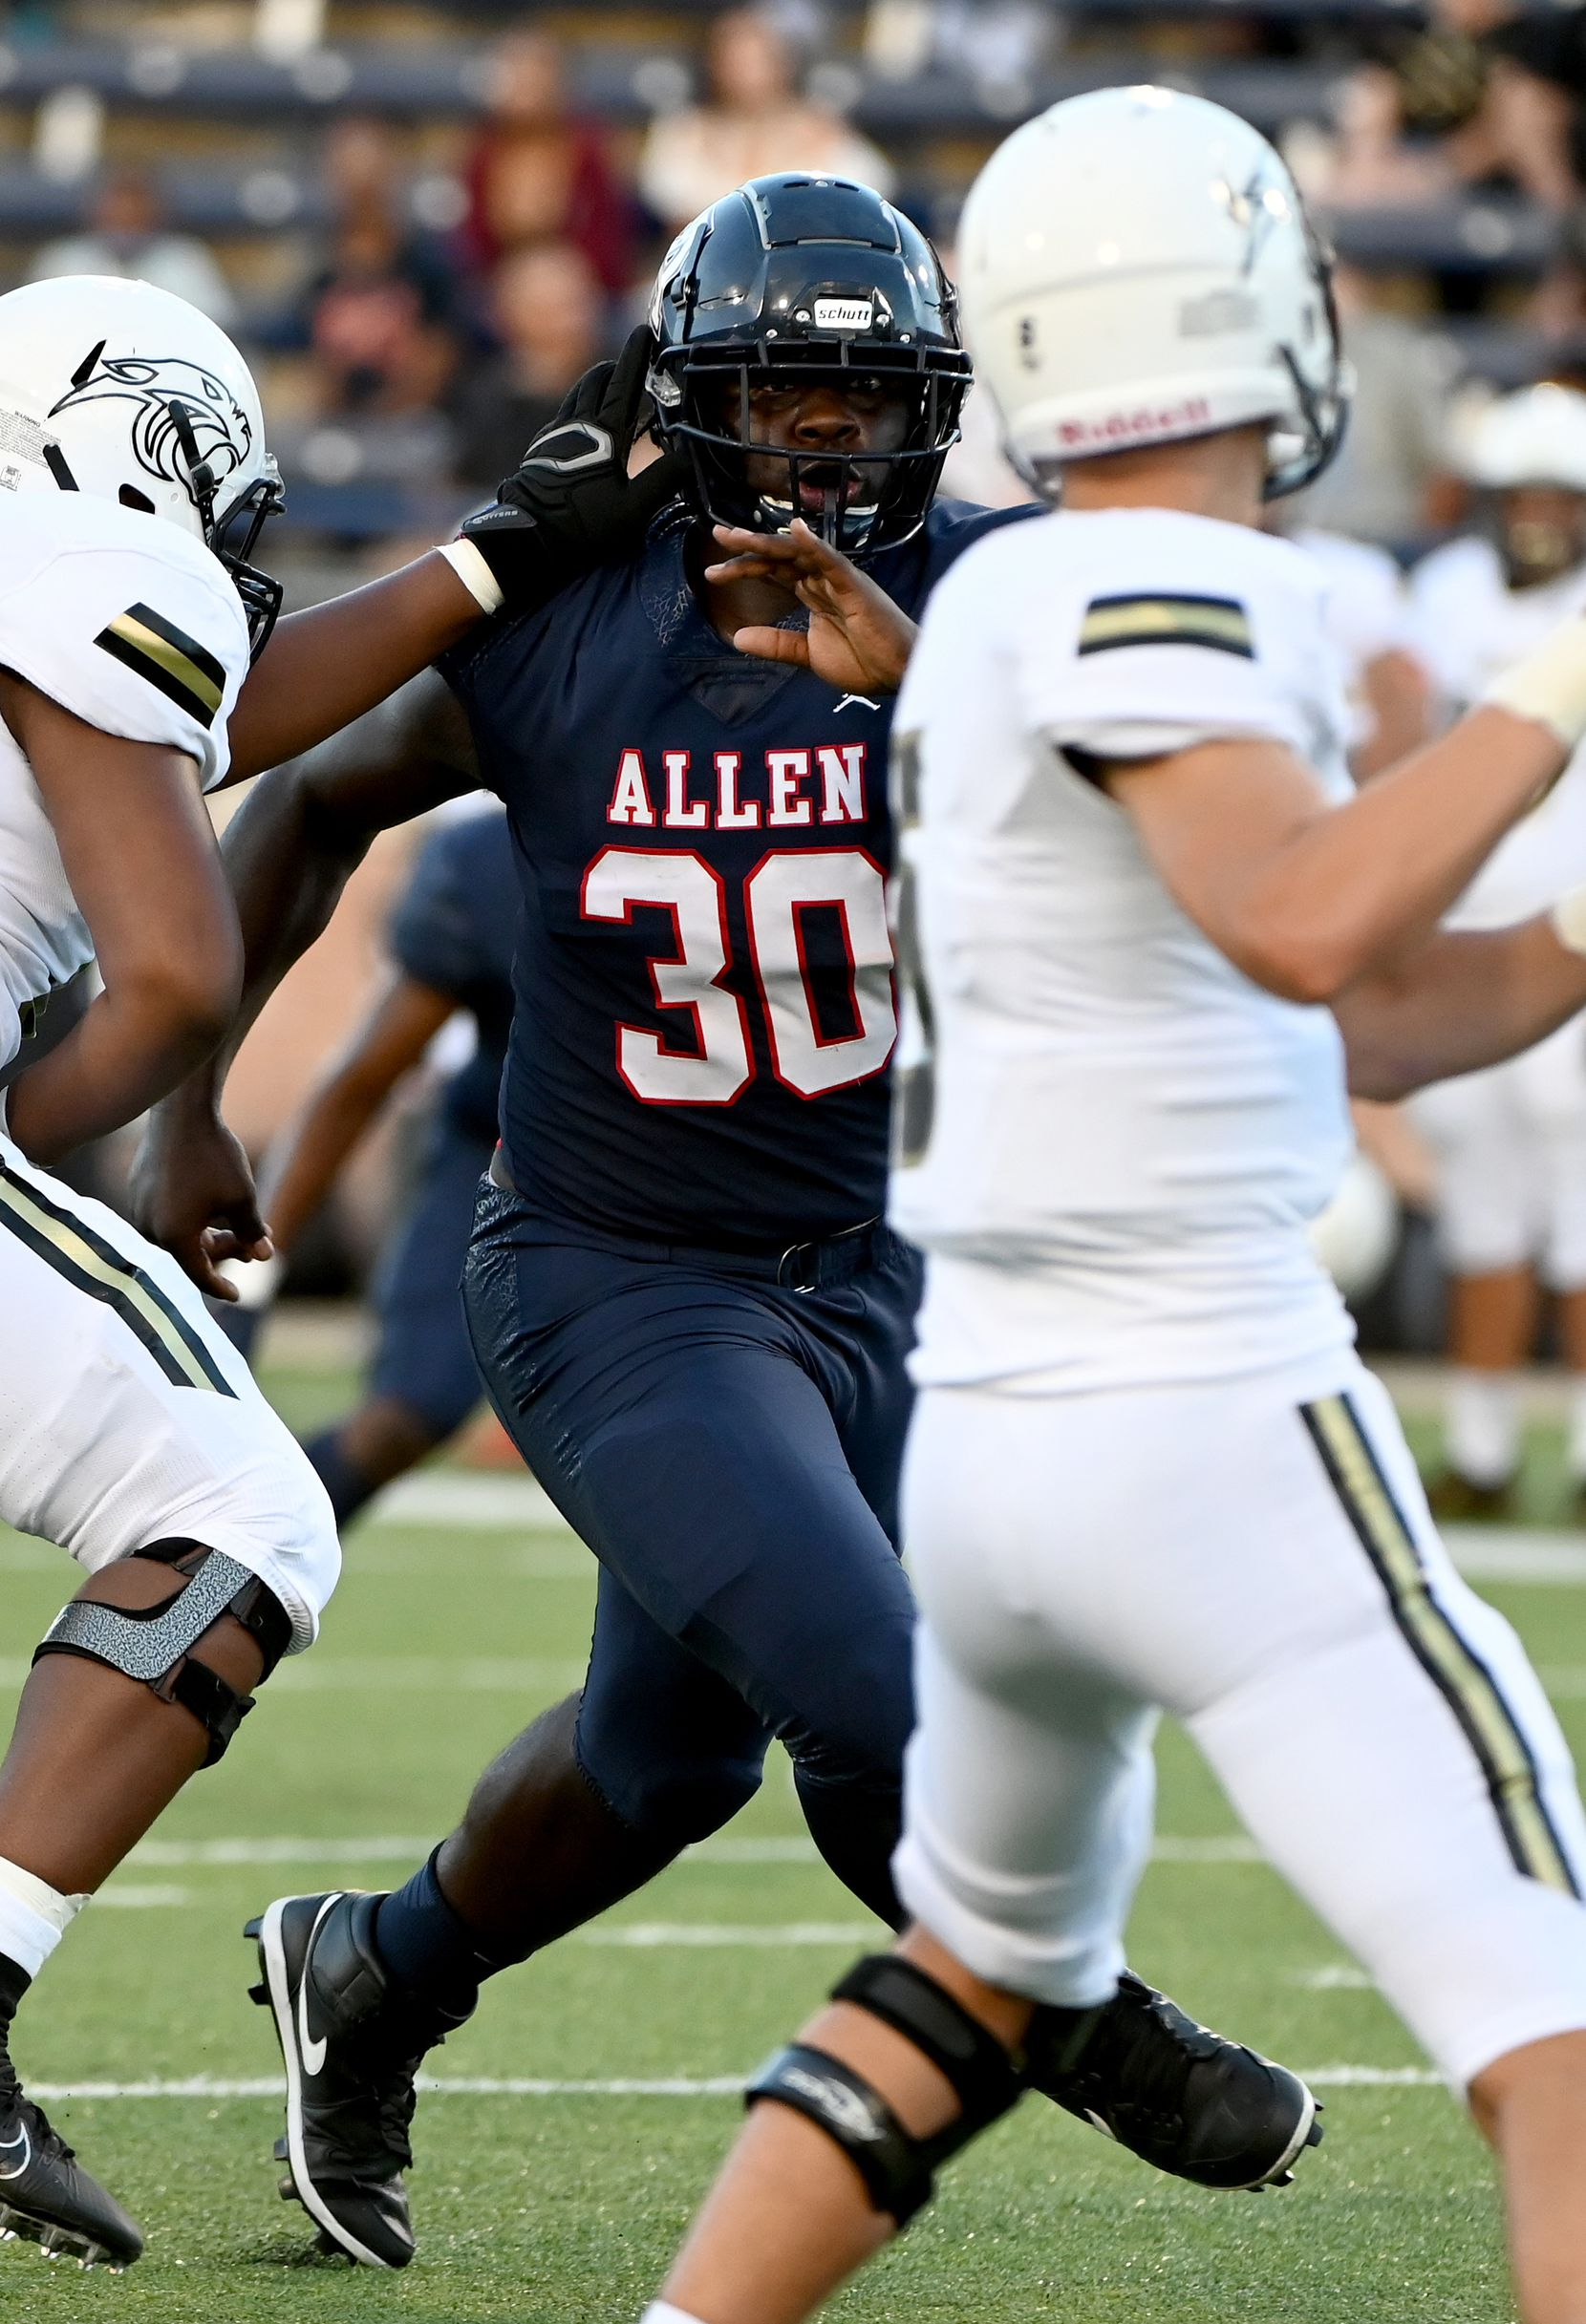 Allen's DJ Hicks (30) fights through a block by Plano East's Ralee Jackson as quarterback Drew Devillier looks to pass in the first half during a high school football game between Plano East and Allen, Friday, Aug. 27, 2021, in Allen, Texas. (Matt Strasen/Special Contributor)